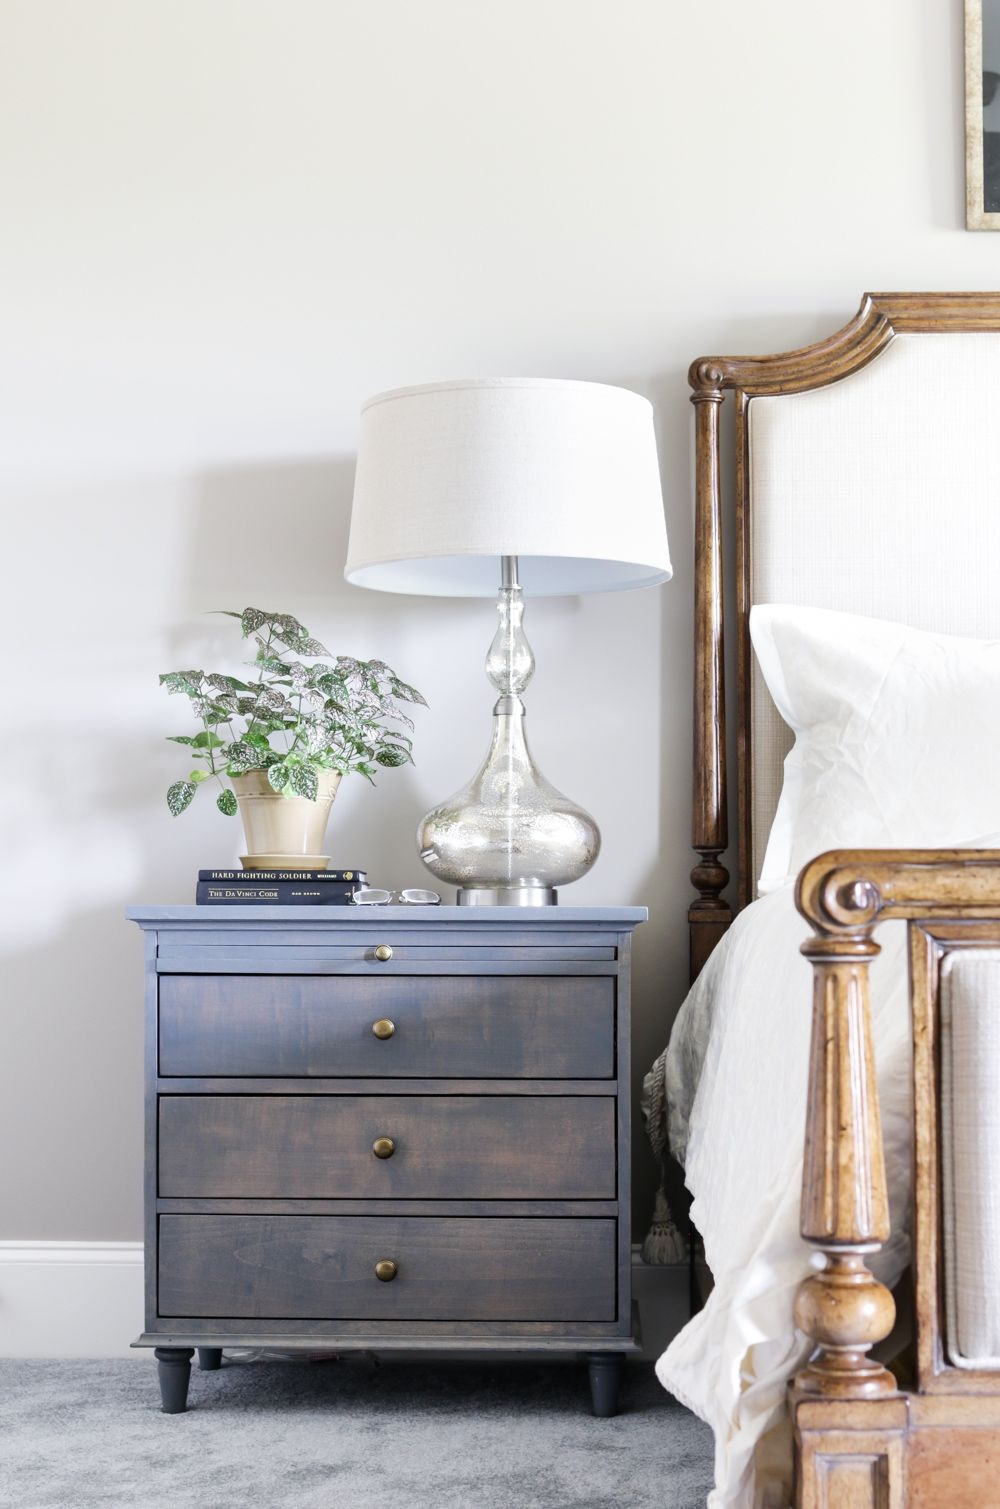 15 Easy Nightstand Ideas to Liven up Any Bedroom